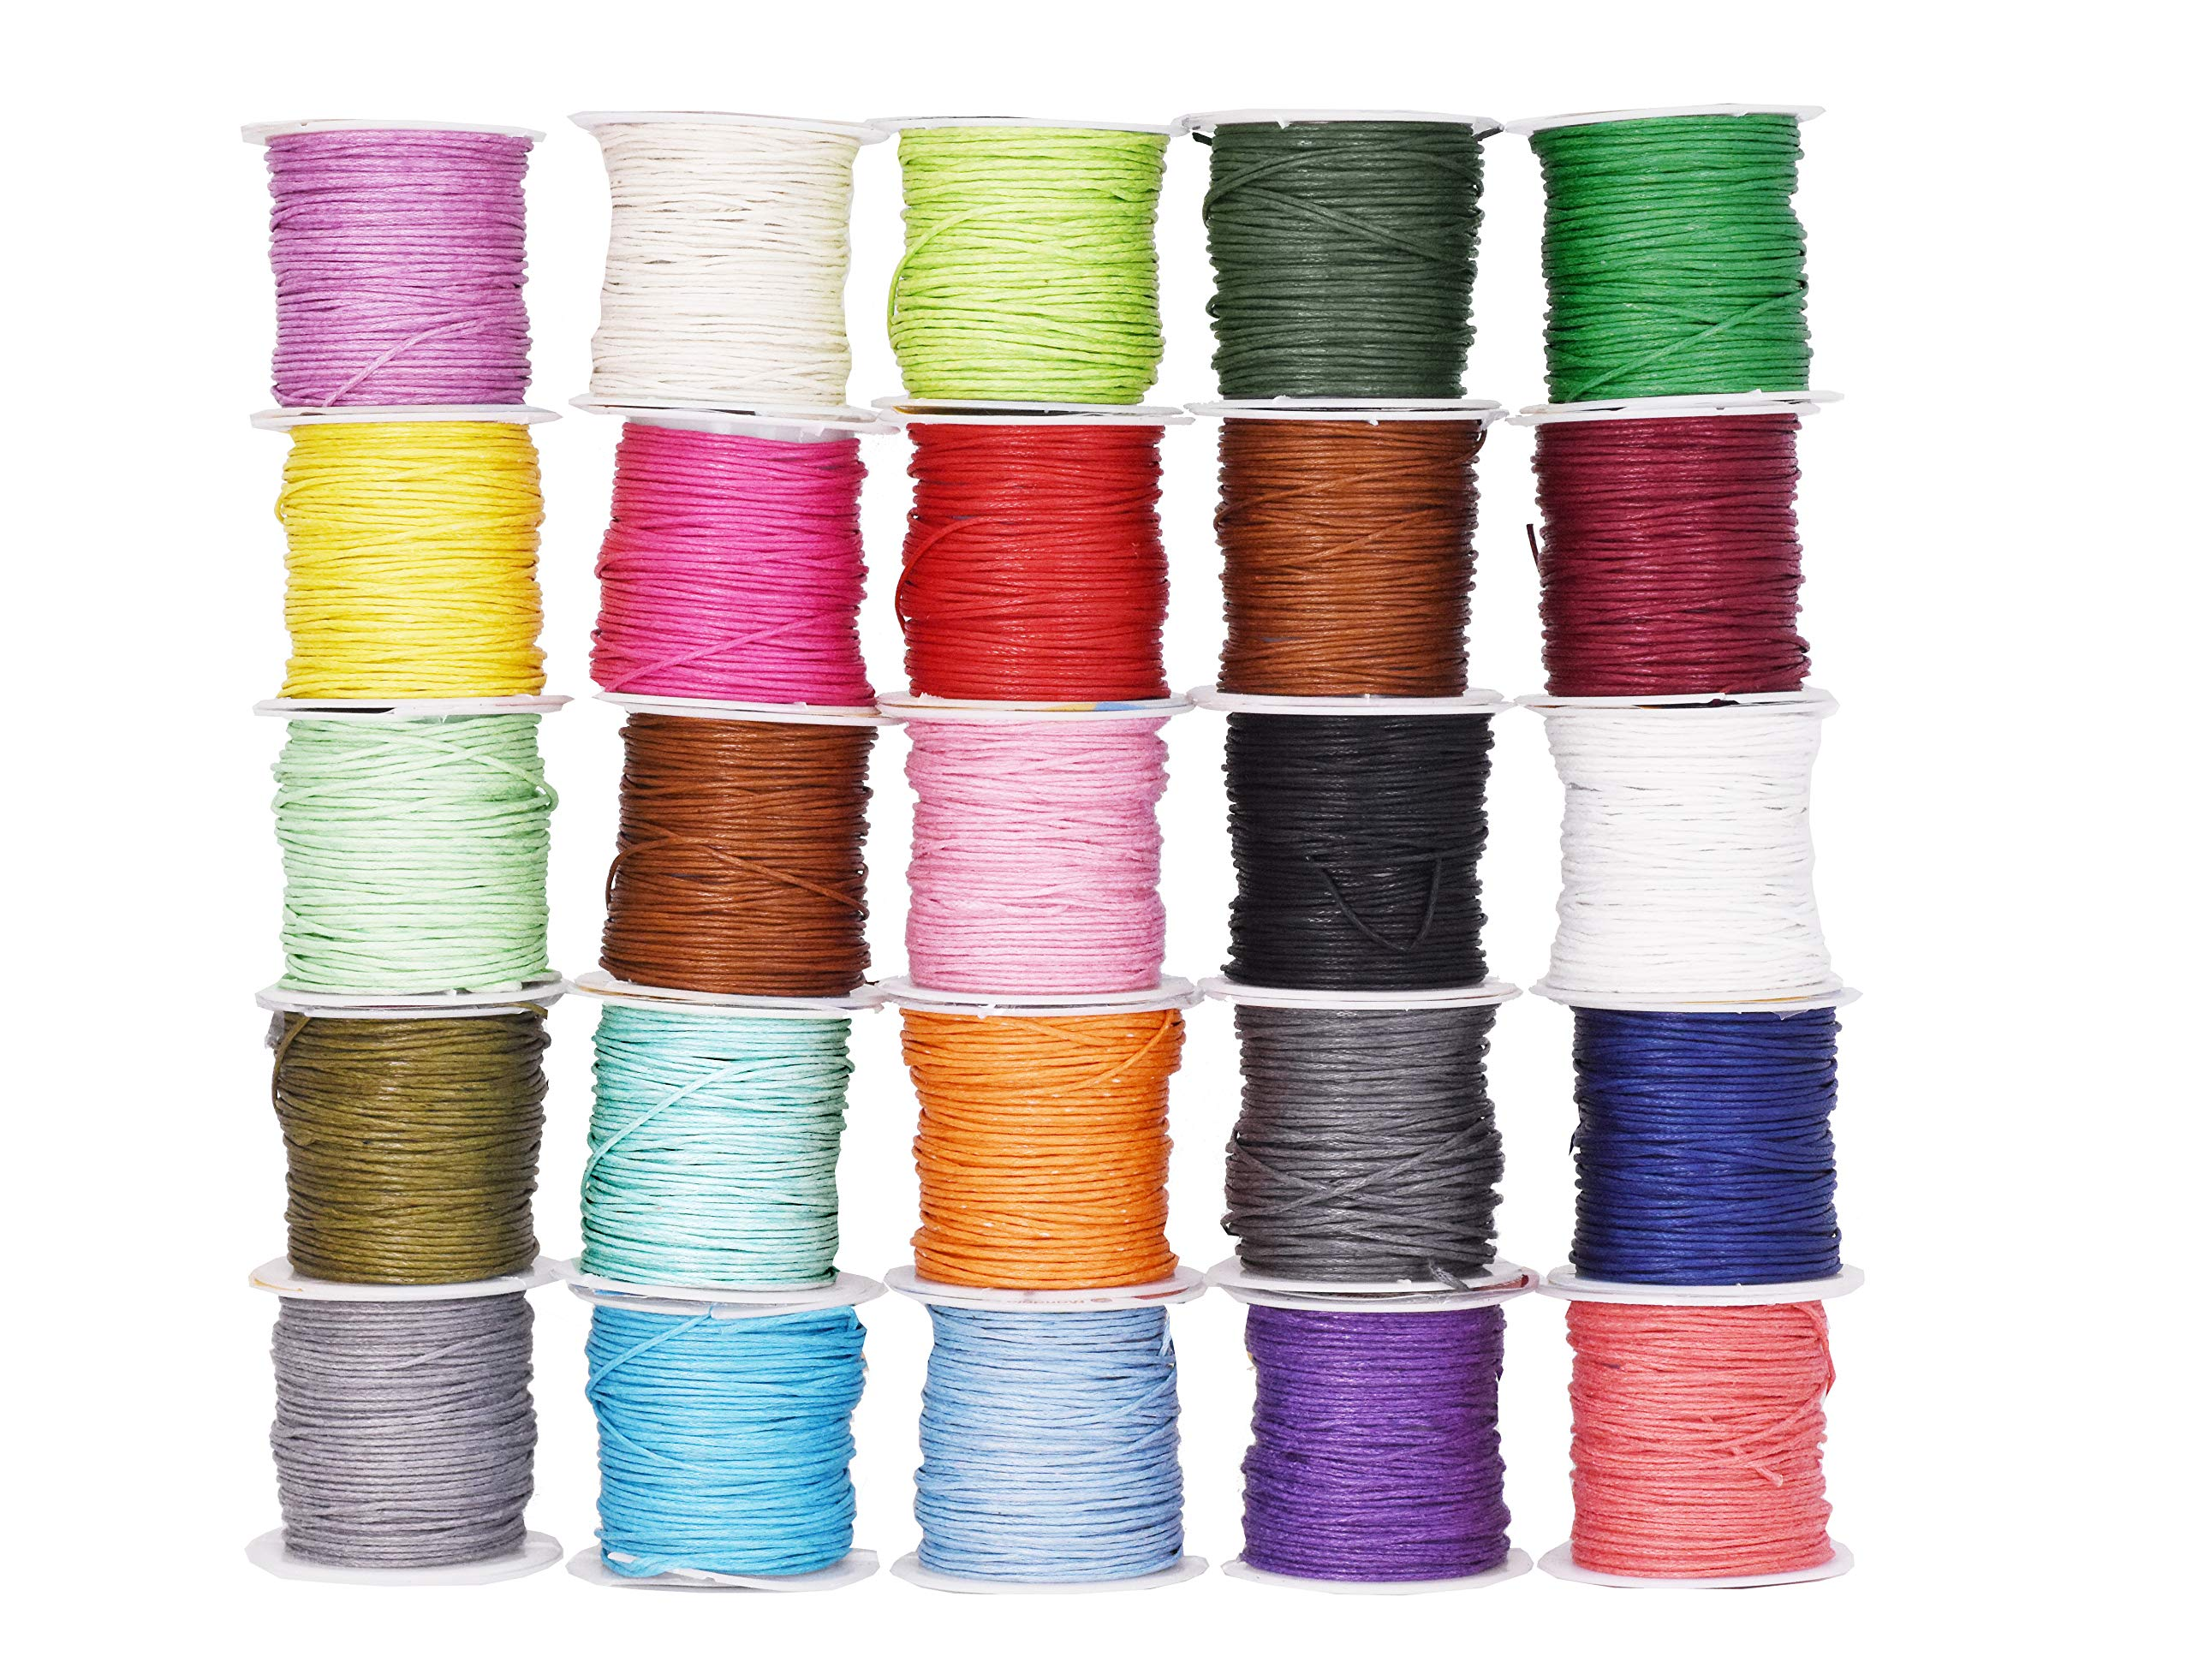 Mandala Crafts 1mm Jewelry Making Crafting Beading Macramé Waxed Cotton Cord Thread (25 Assorted Colors) by Mandala Crafts